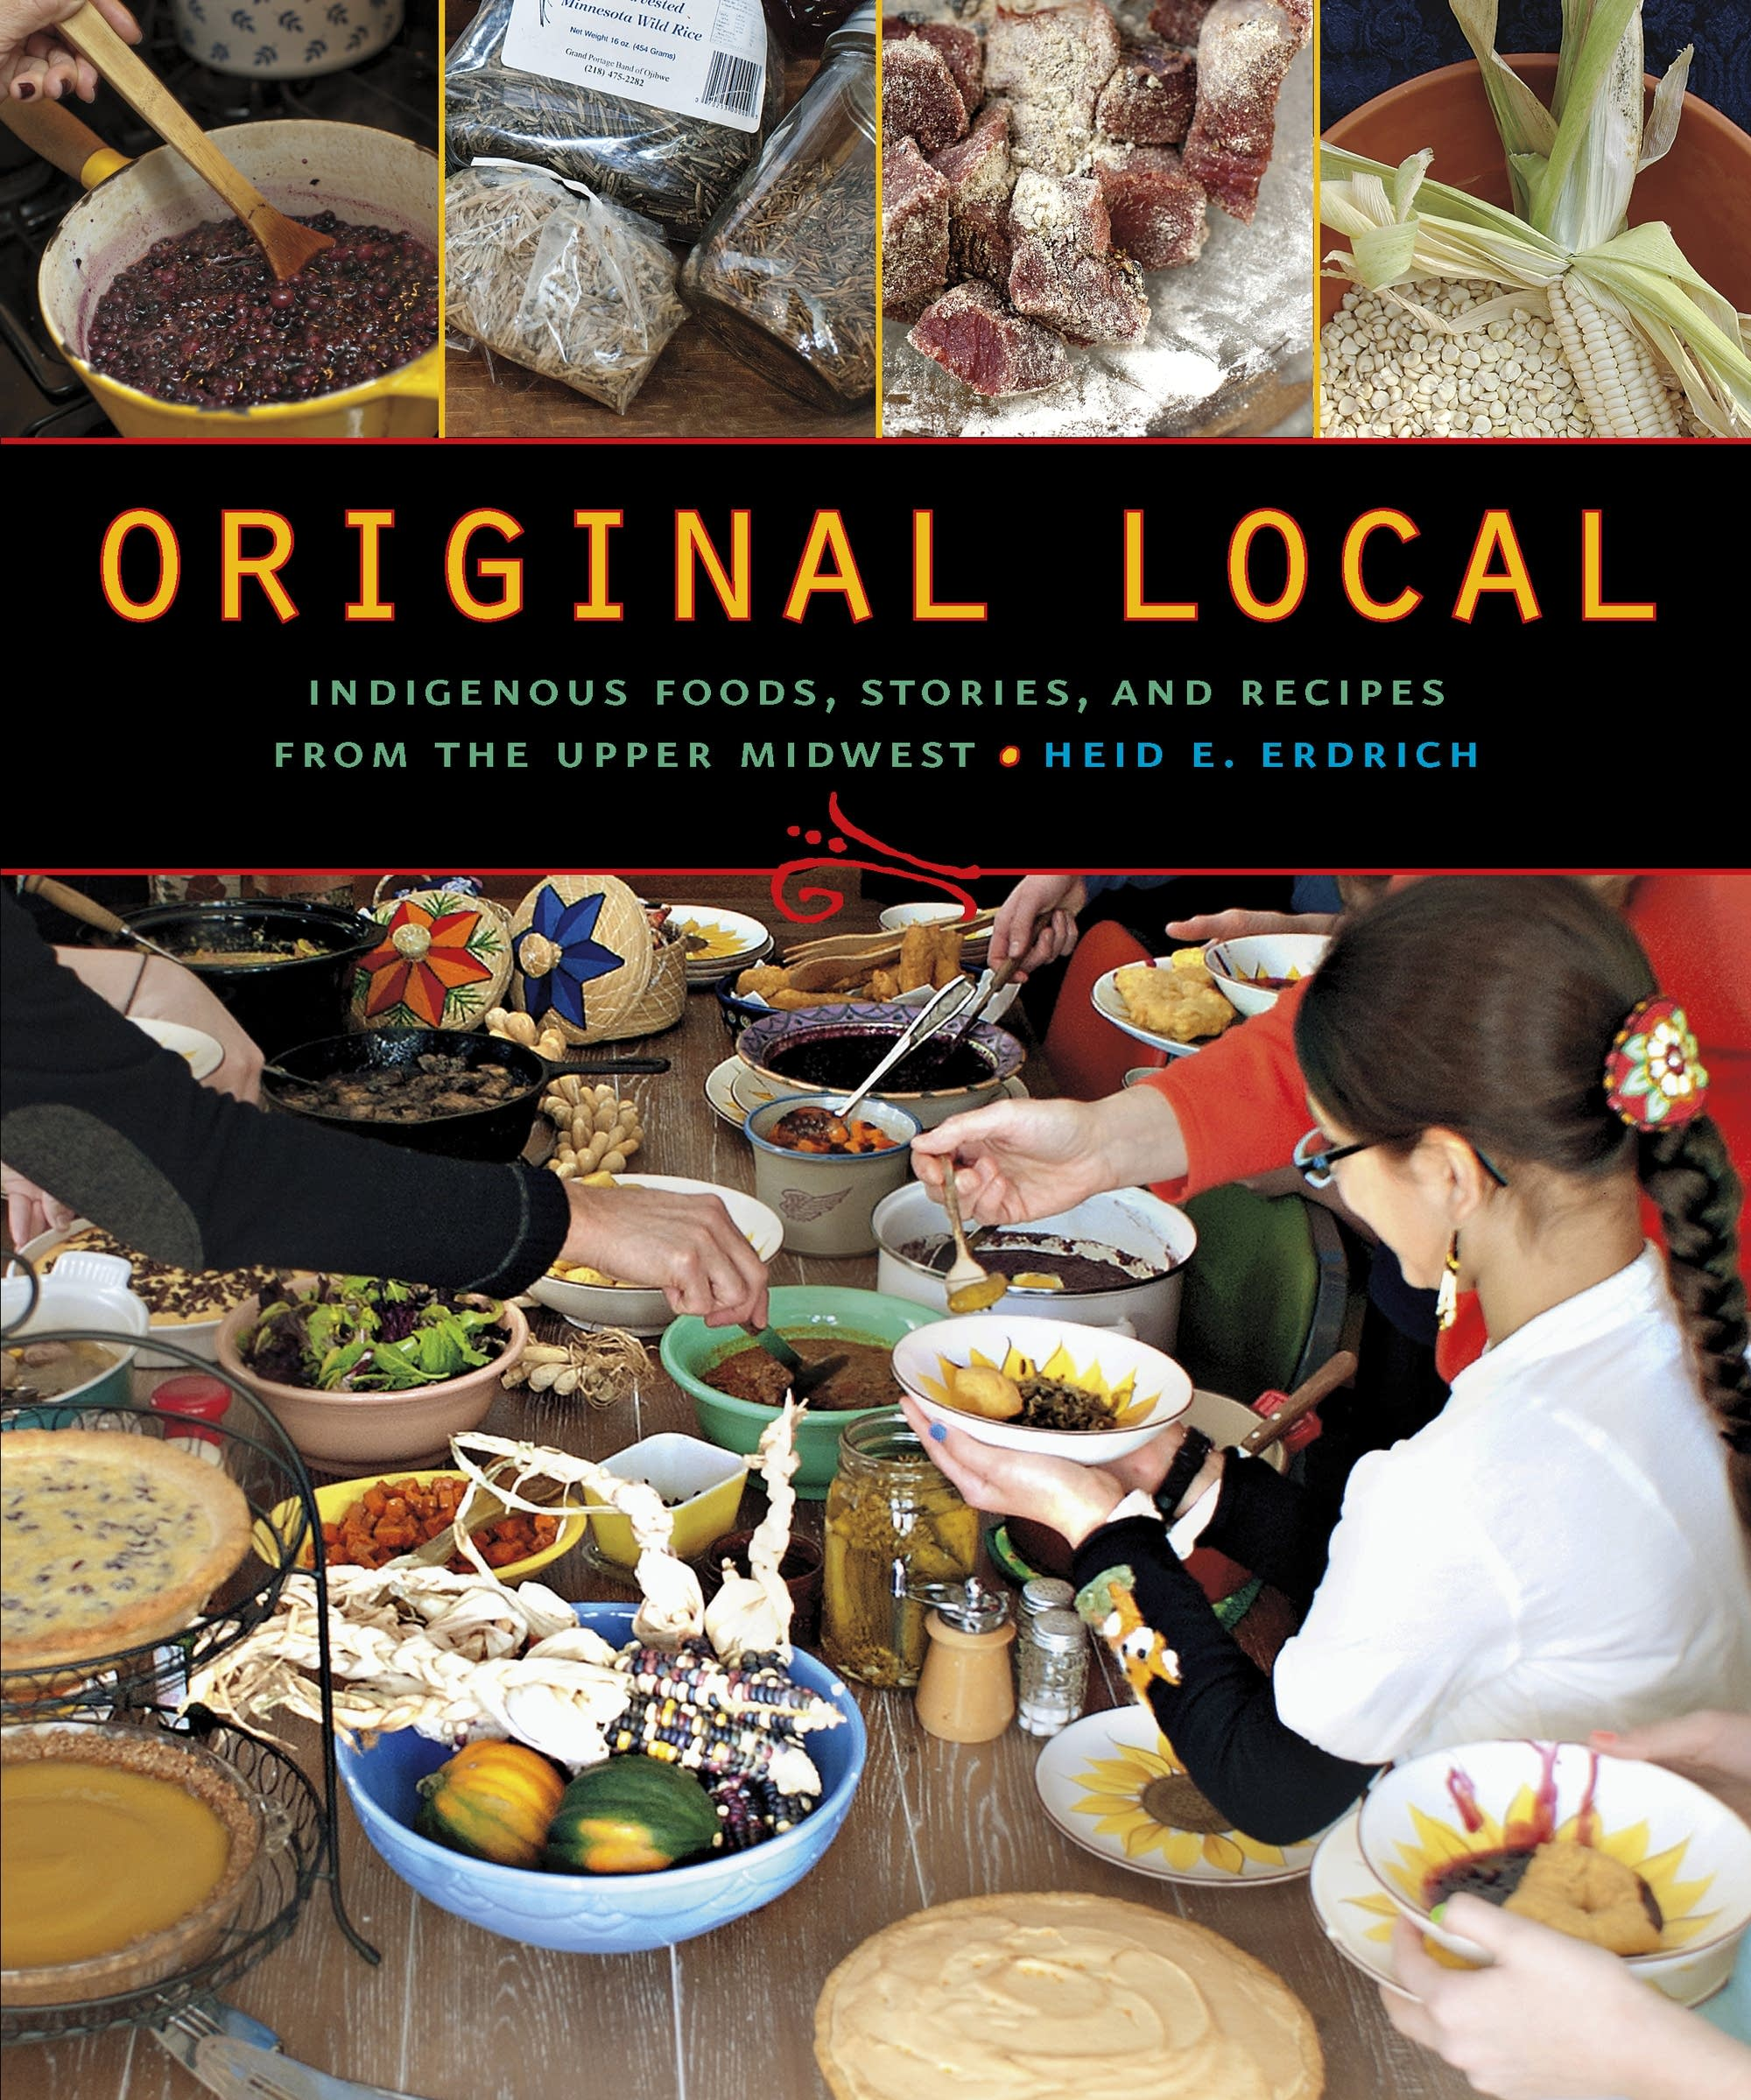 """Original Local"" by Heid E. Erdrich"